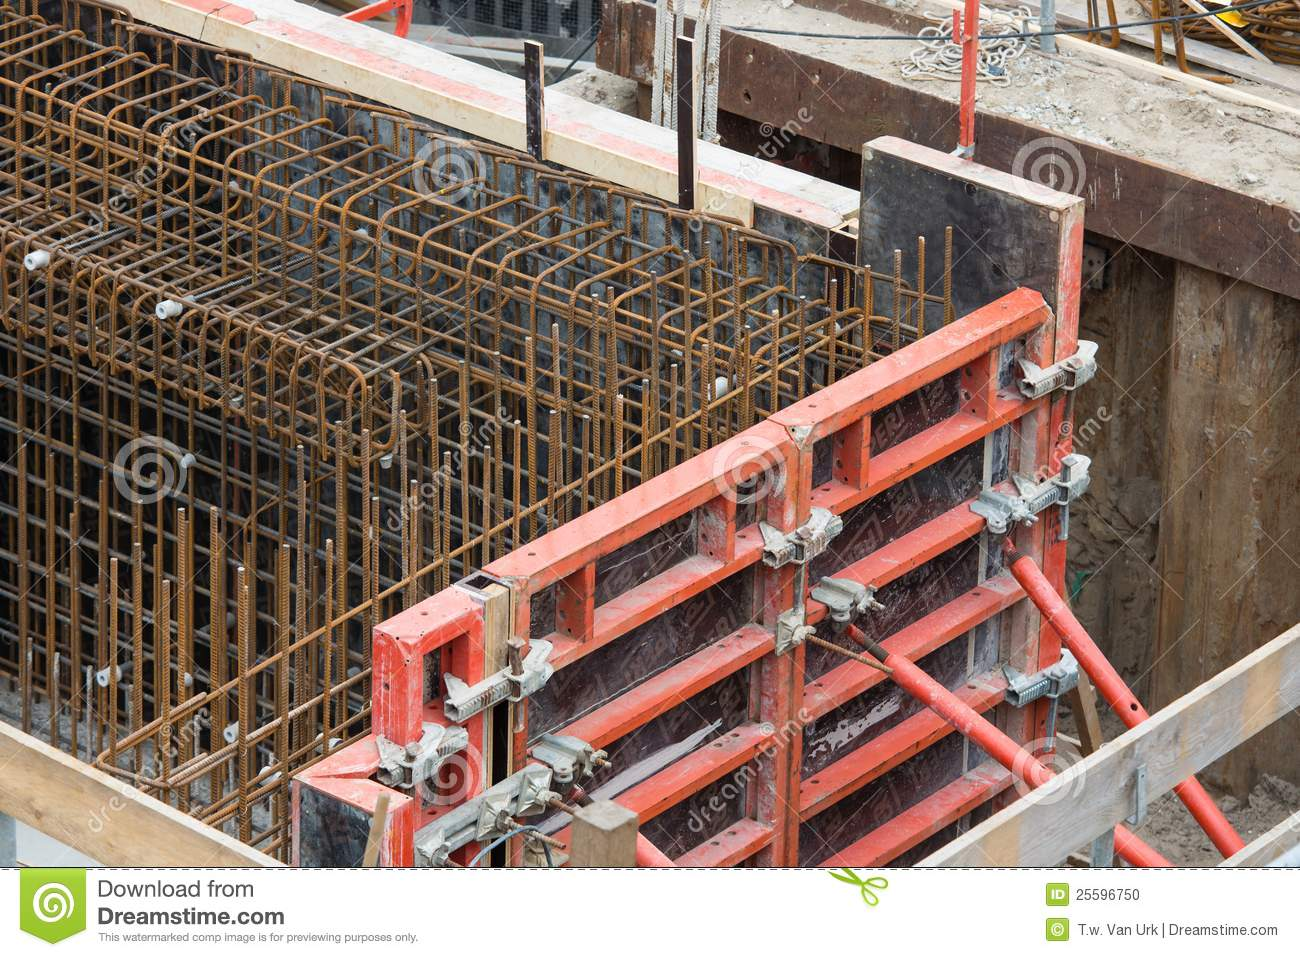 Reinforced Cement Concrete : Steel bars for reinforced concrete foundation stock photo